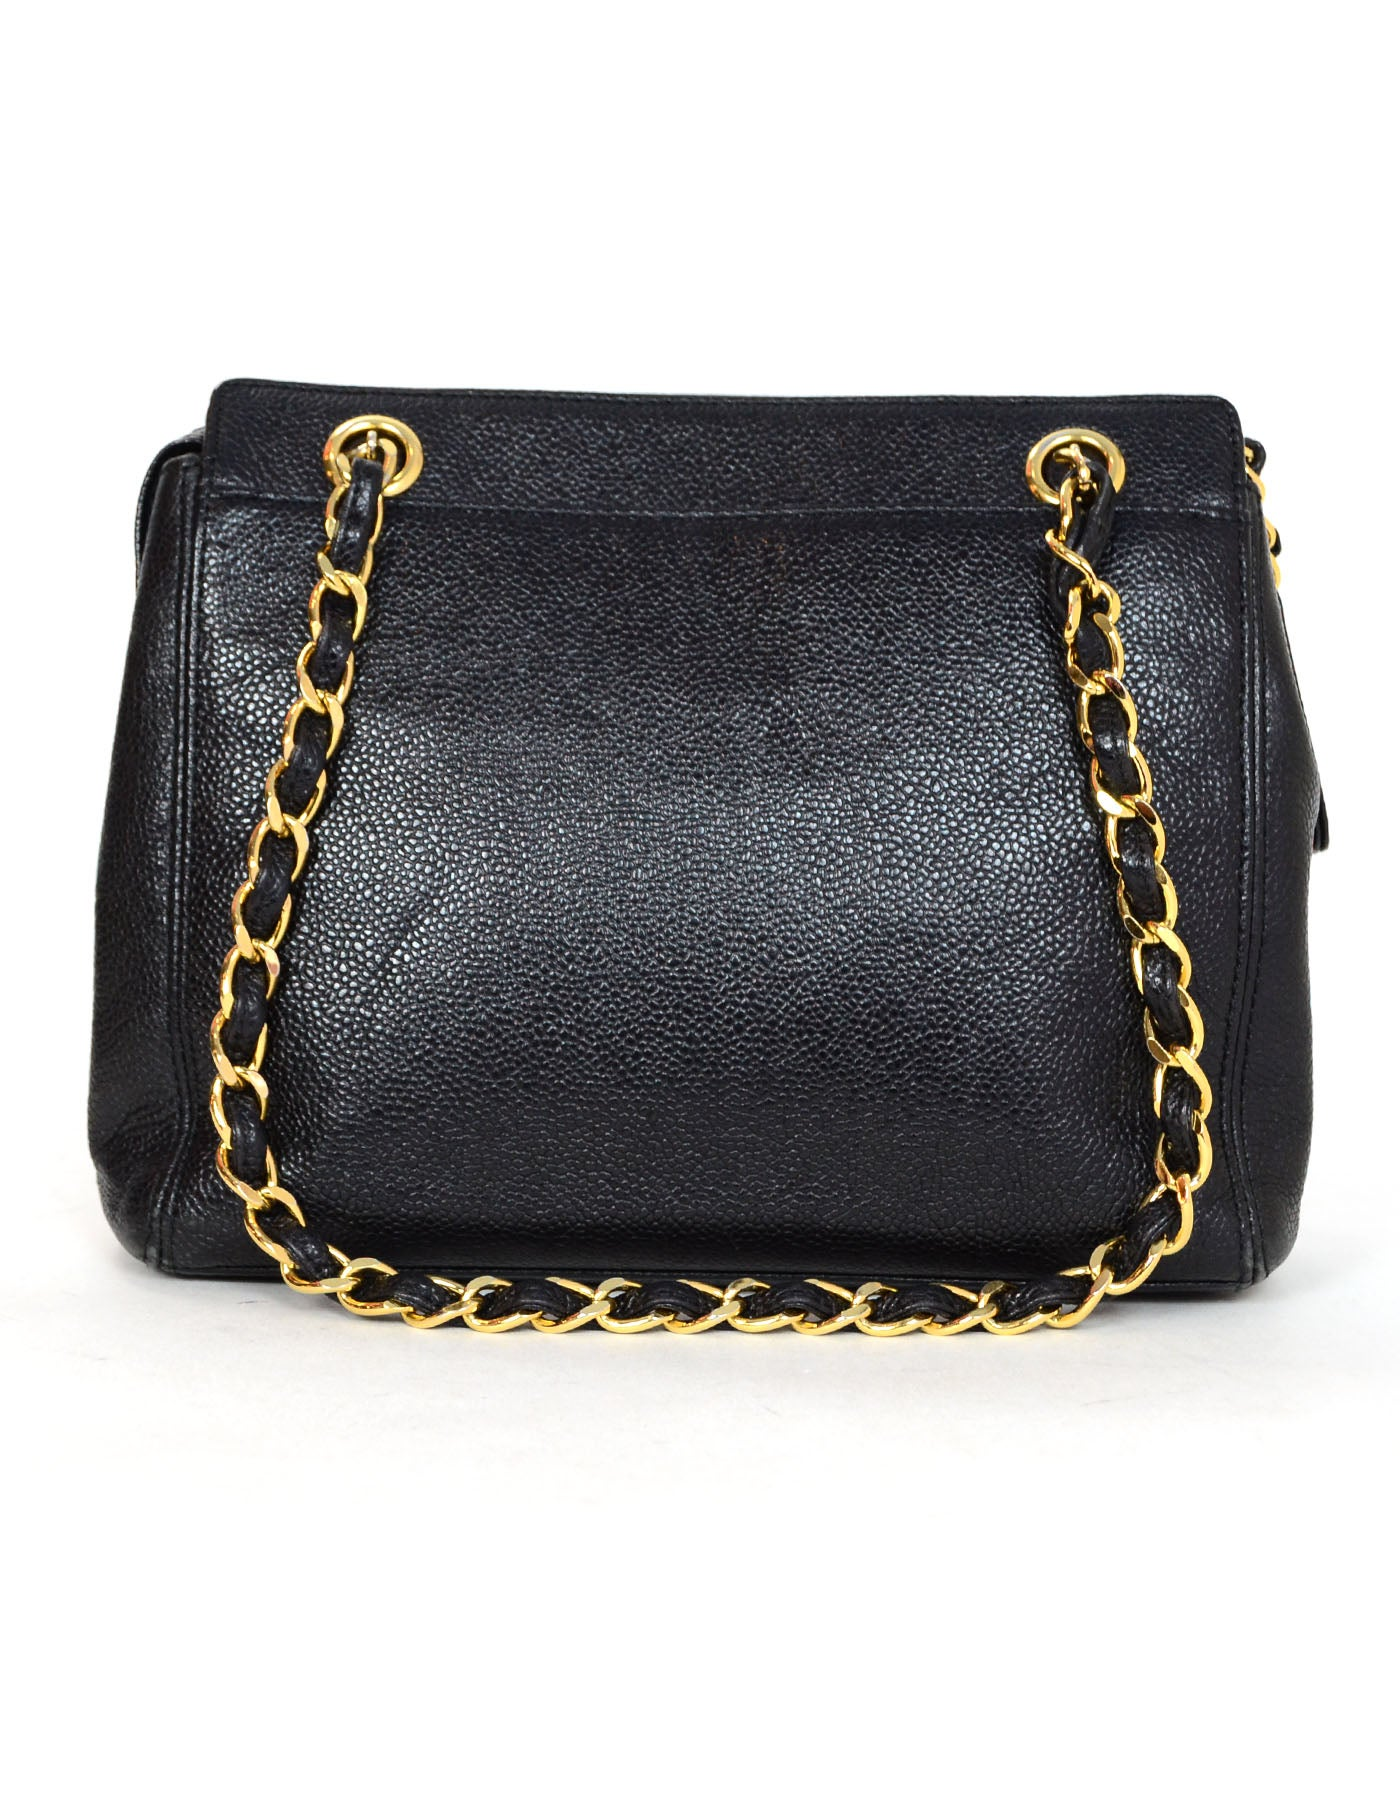 2e31790a0a22 Chanel Vintage Black Caviar Leather CHANEL Logo Tote Bag For Sale at 1stdibs